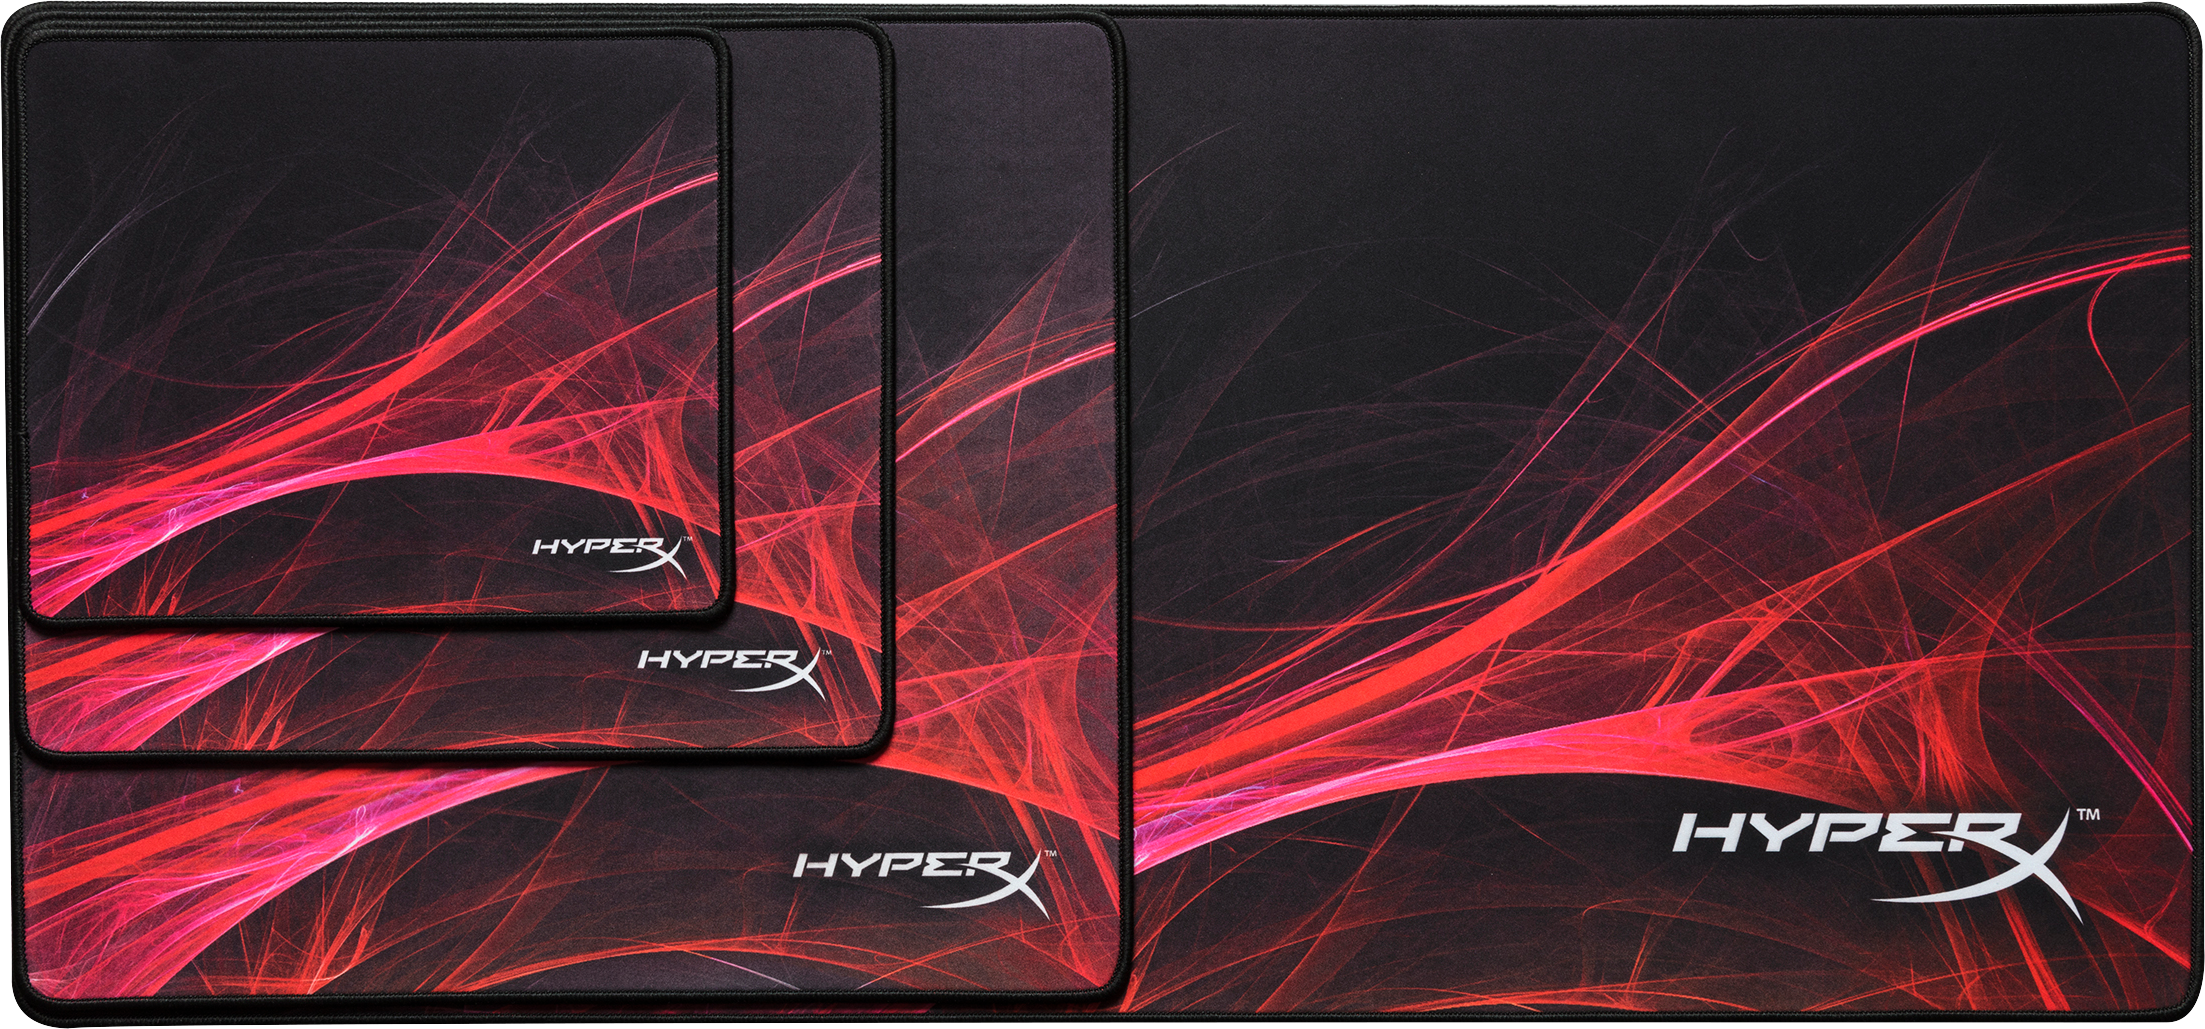 HyperX FURY S Speed Pro Gaming Mouse Pad M